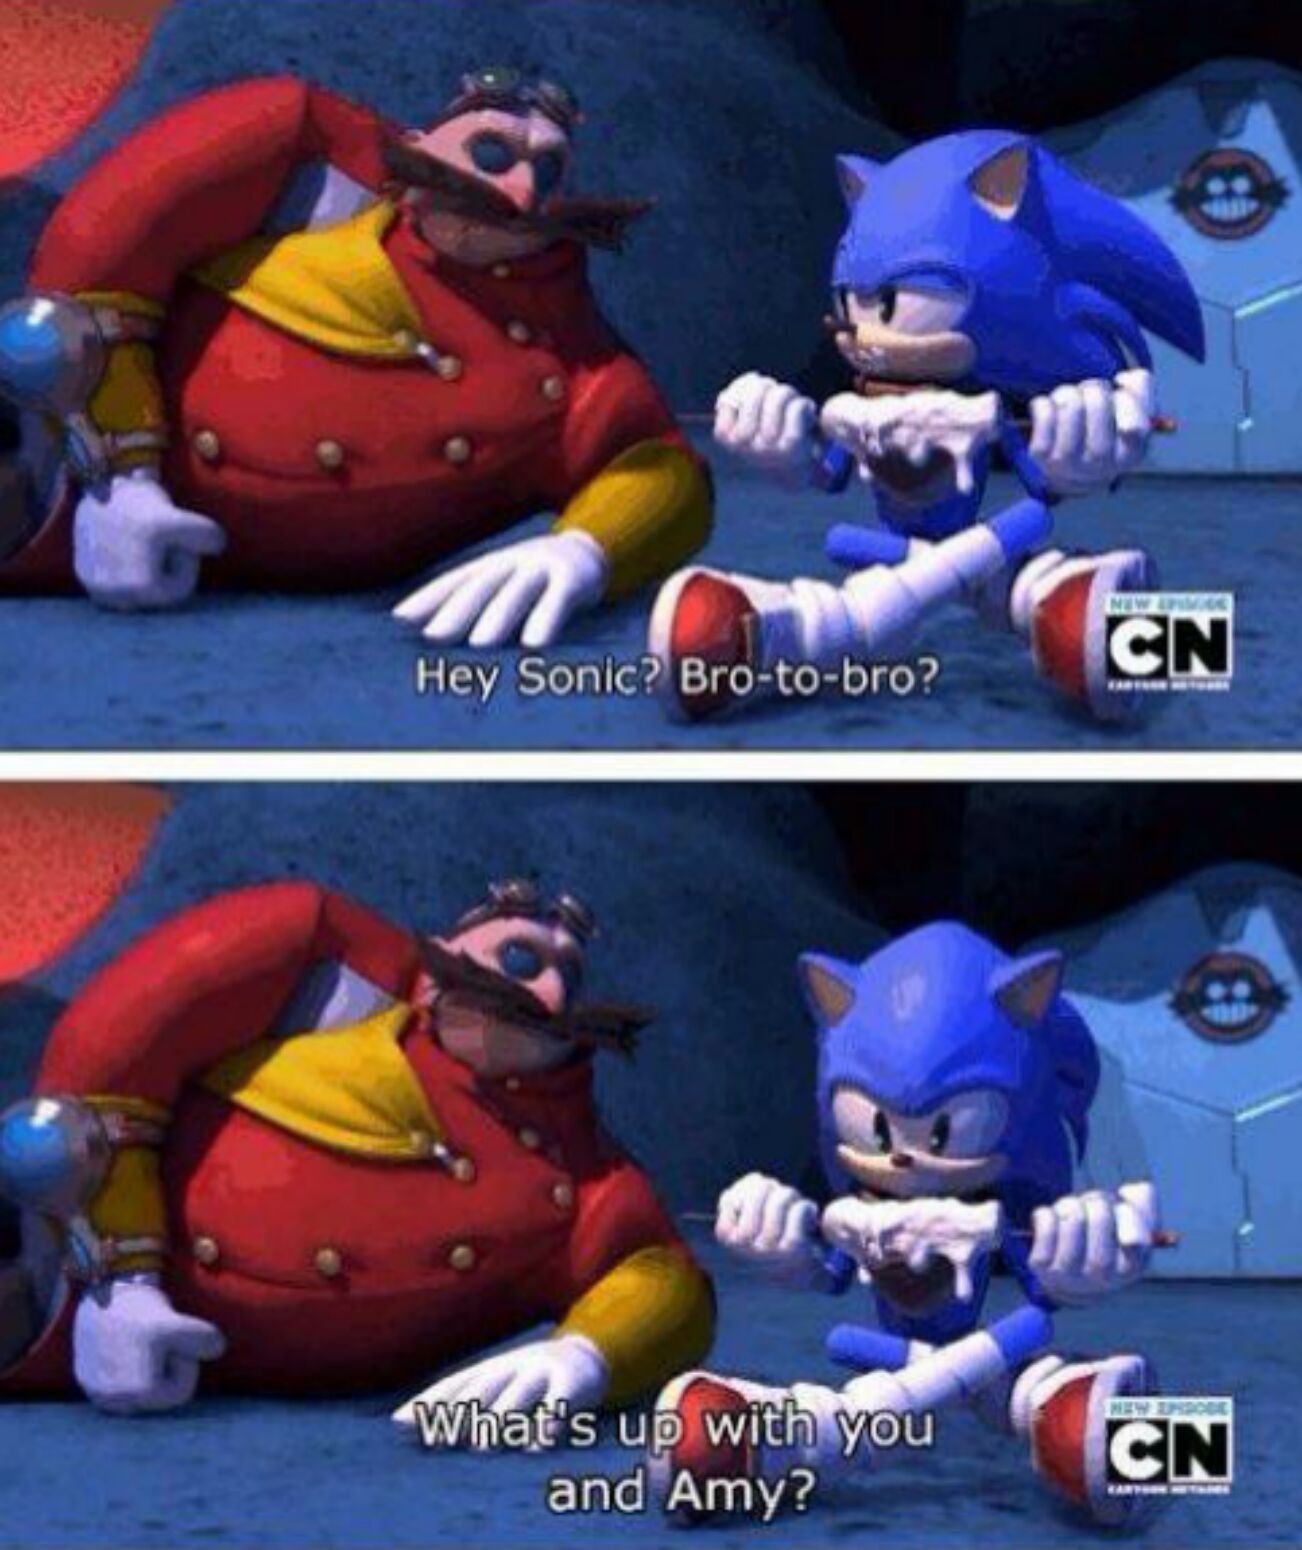 So I just started watching Sonic Boom - meme